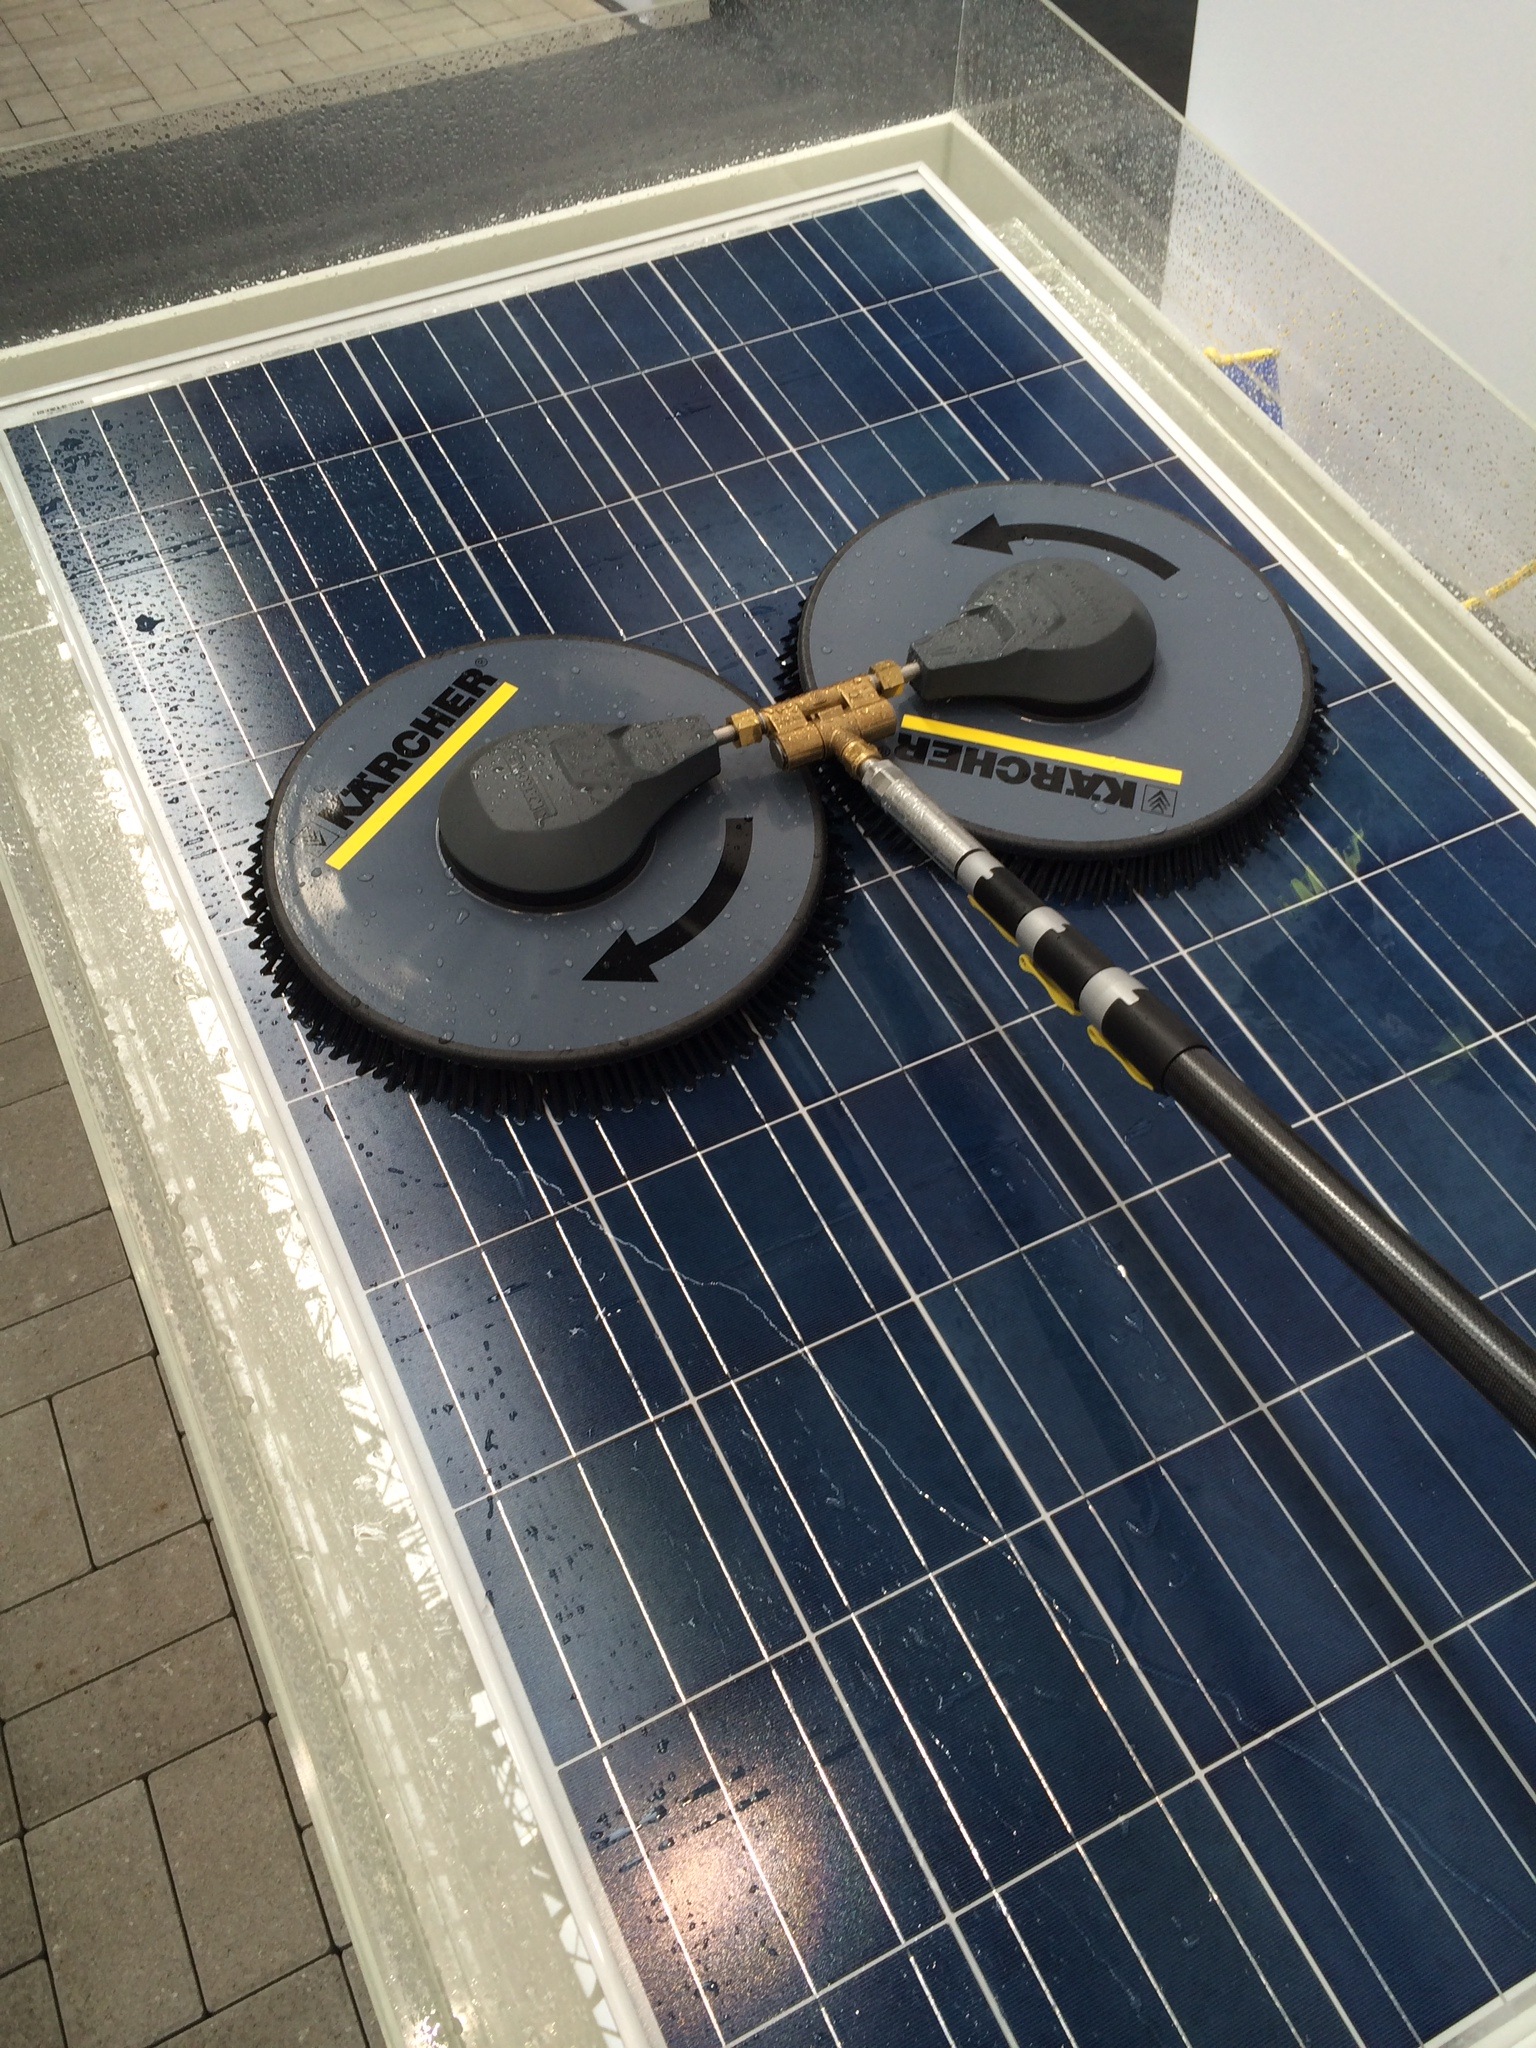 Solar Panel Cleaning At The Issa Interclean Today